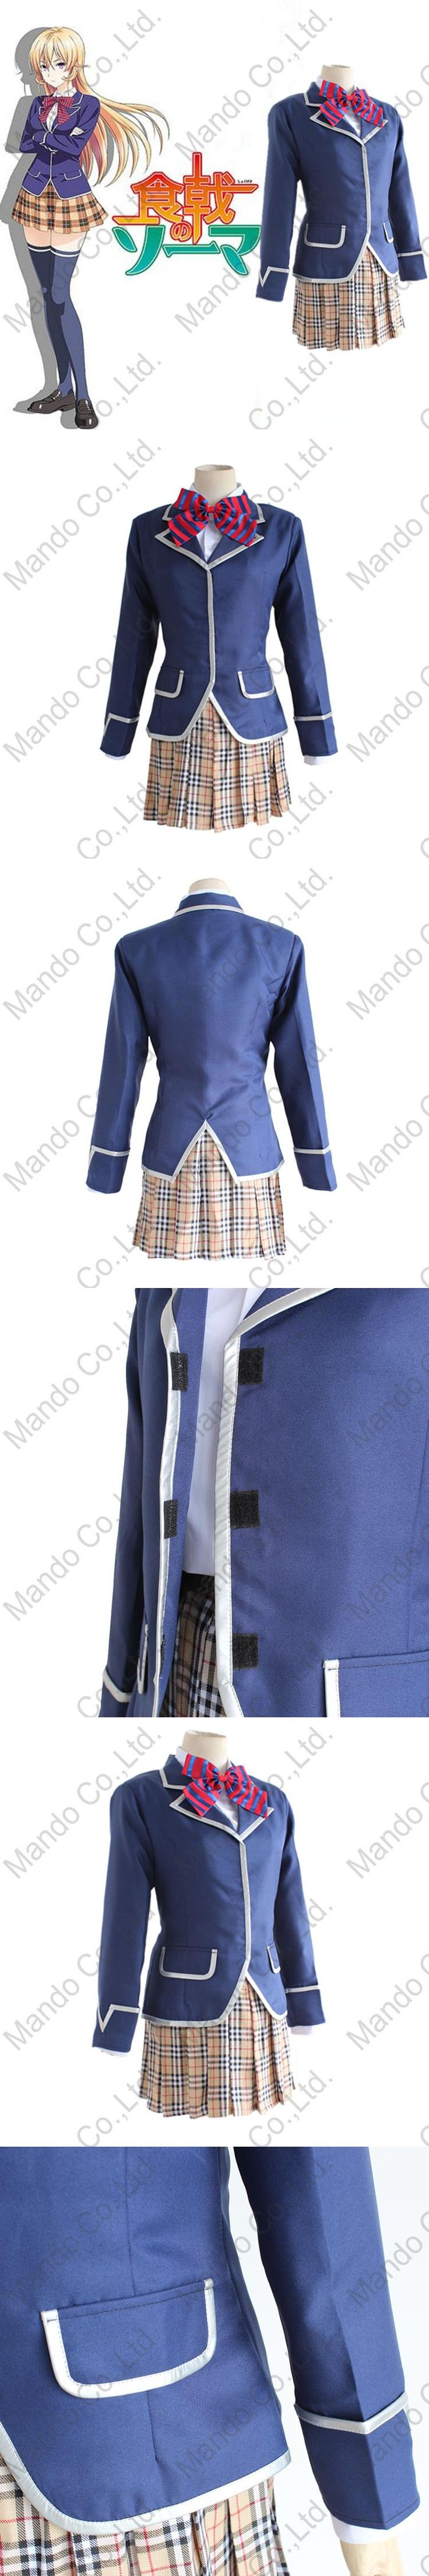 Anime Shokugeki no Soma Nakiri erina Cosplay Costumes Girls school uniform dress Suit Halloween women cosplay outfit